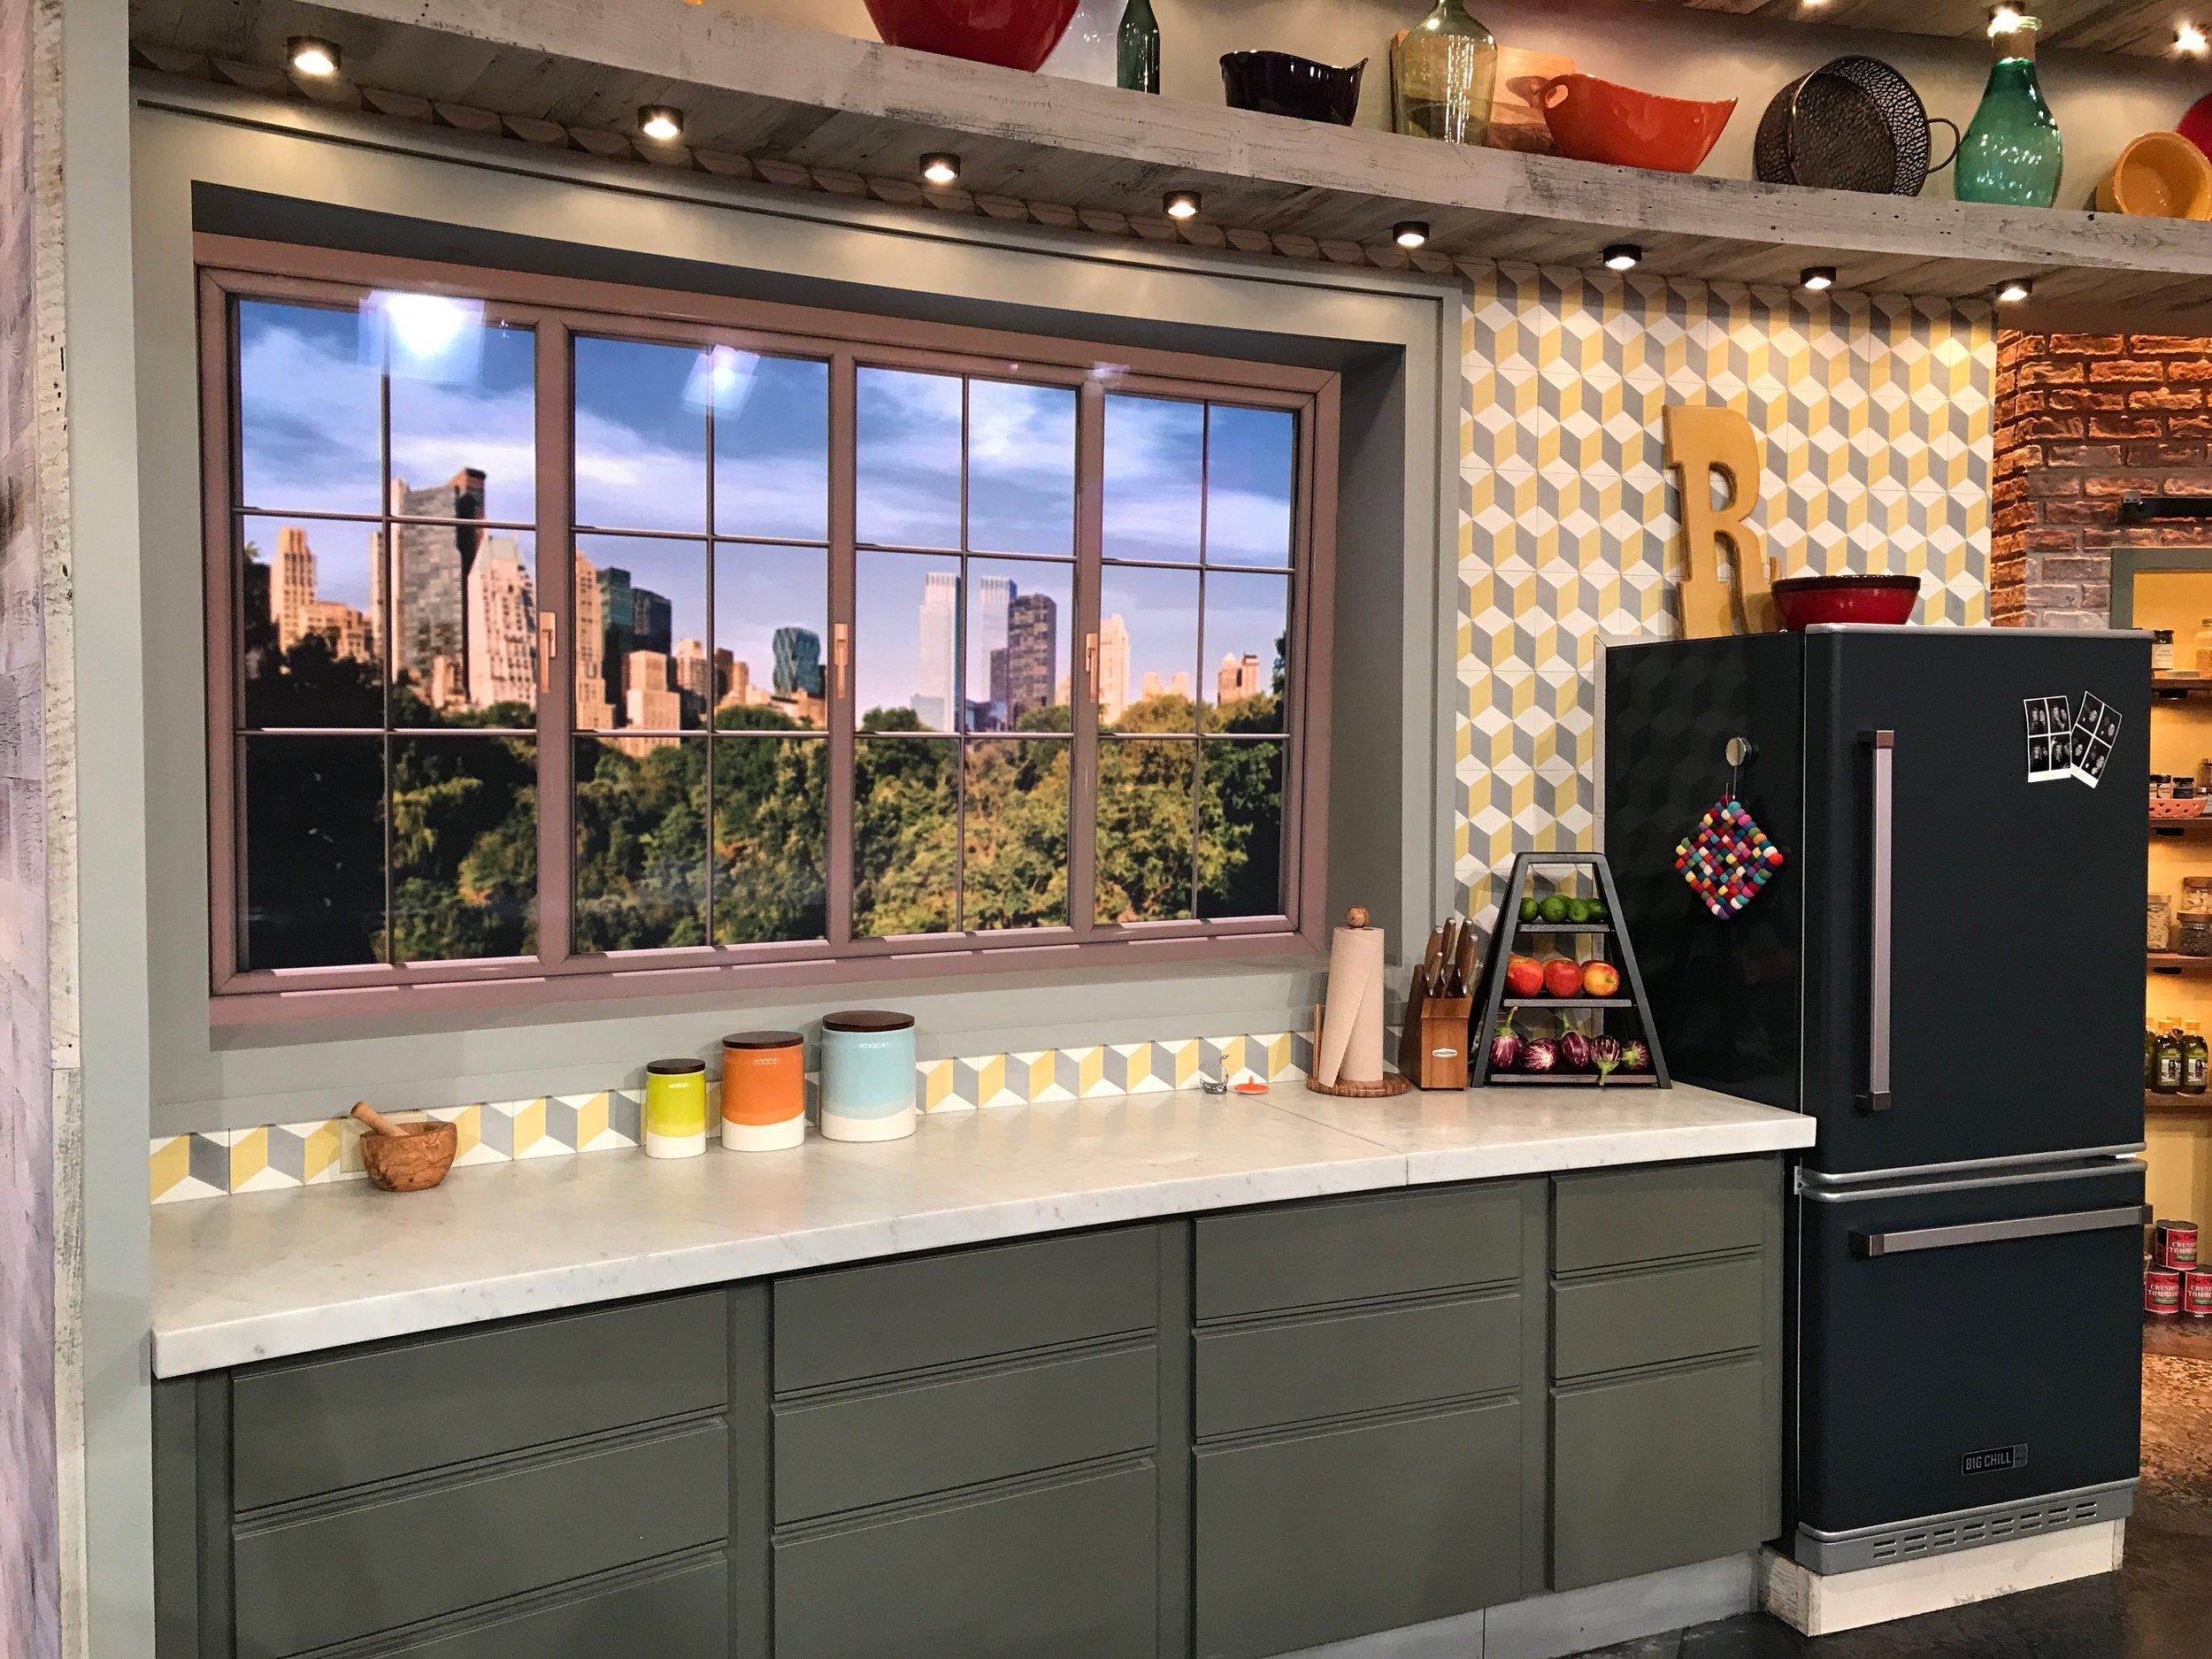 Rachael Ray Studio Kitchen — Anthony Carrino